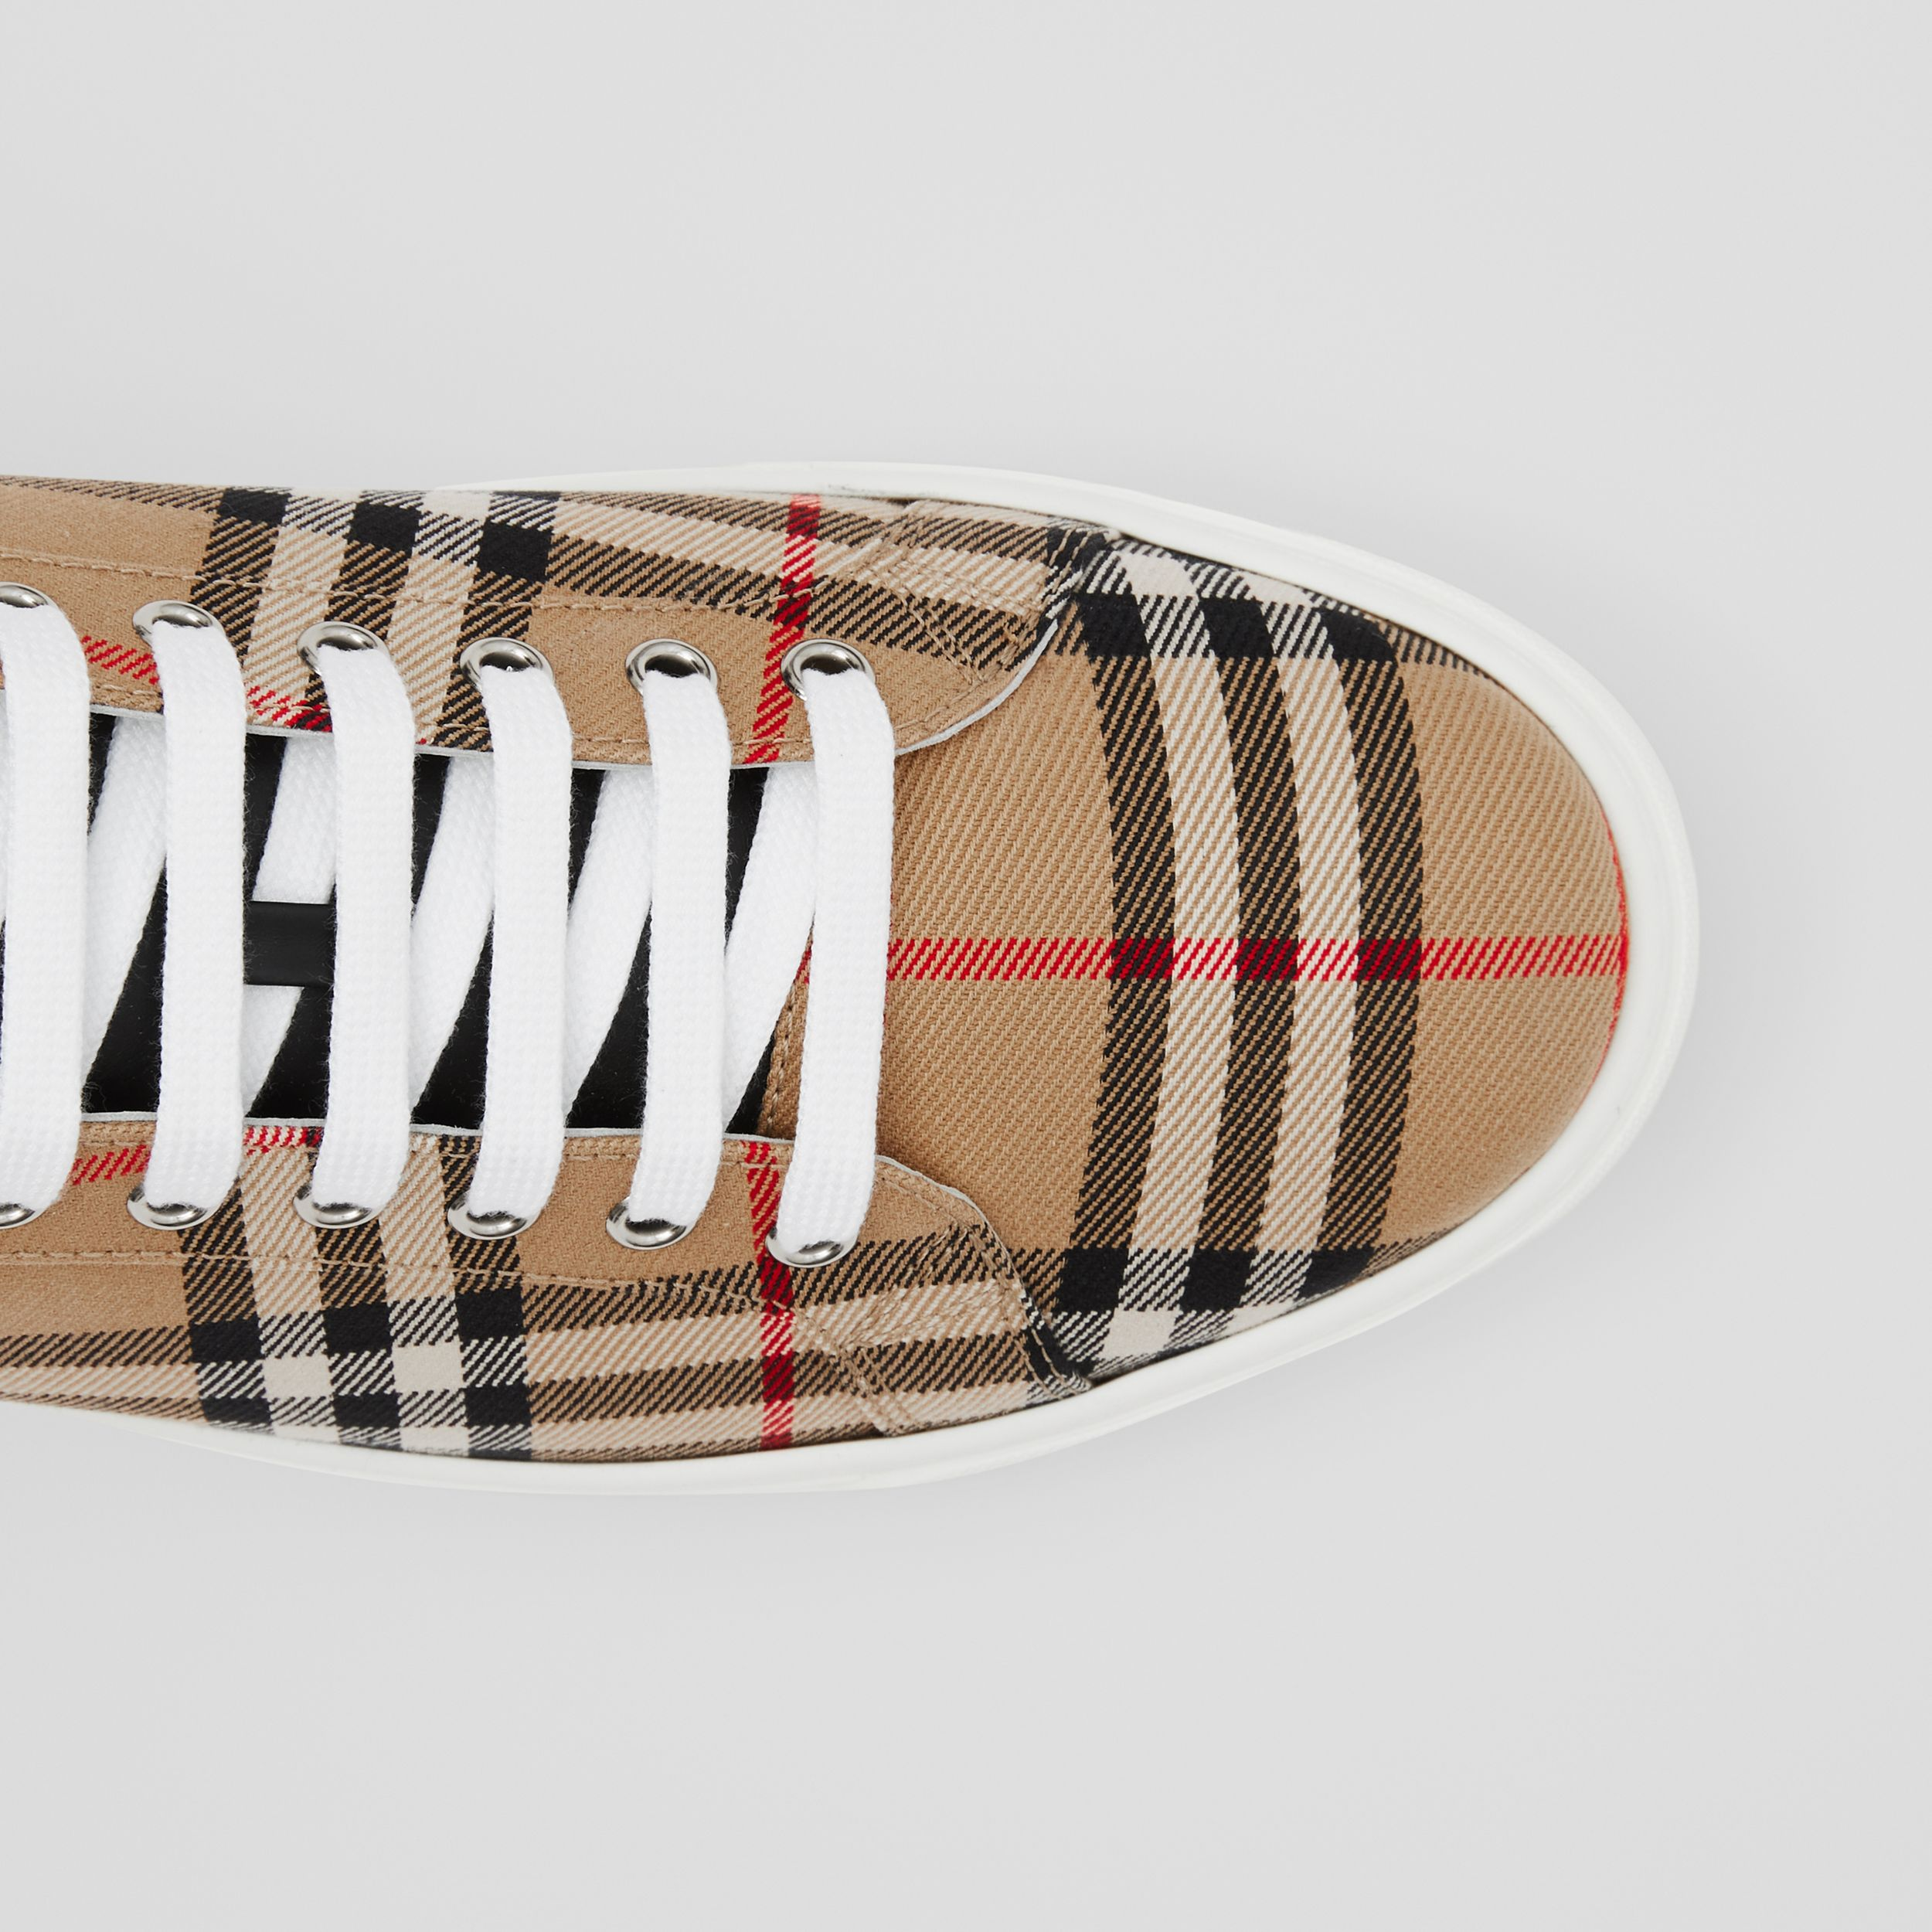 Bio-based Sole Vintage Check and Leather Sneakers in Archive Beige - Men | Burberry - 2